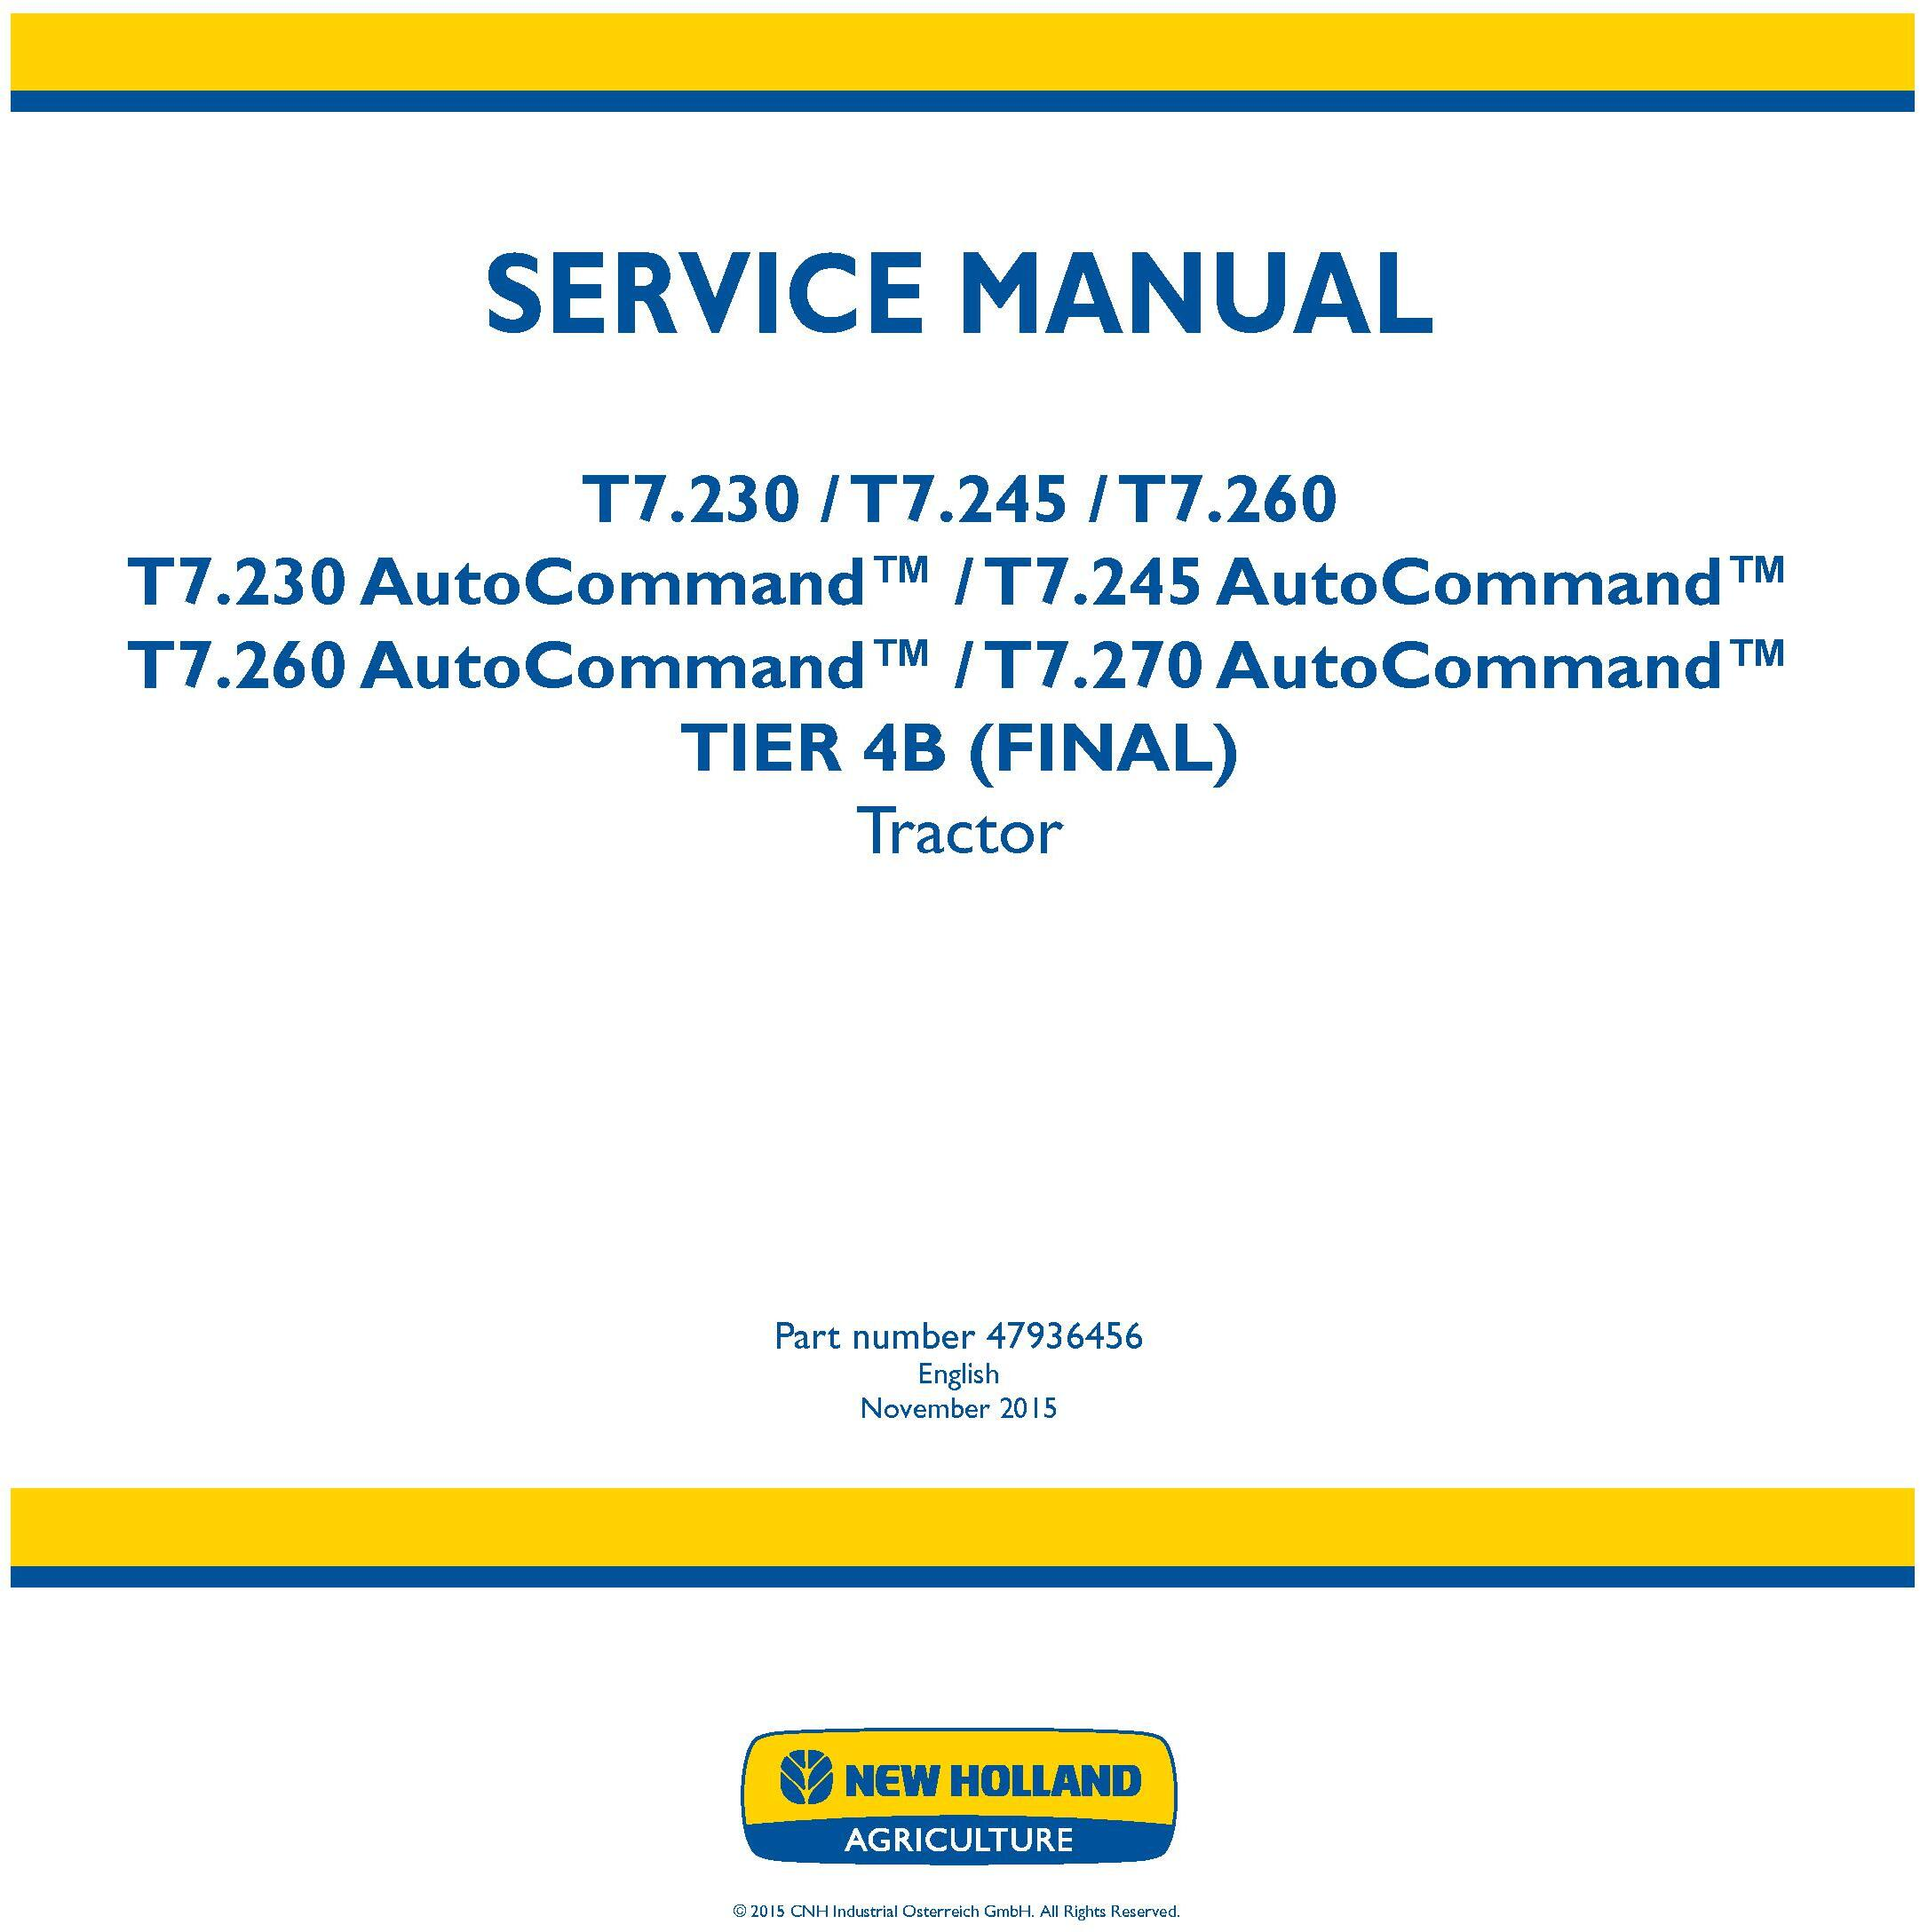 New Holland T7.230, T7.245, T7.260, T7.270 and AutoCommand Tier 4B final Tractor Service Manual - 19465